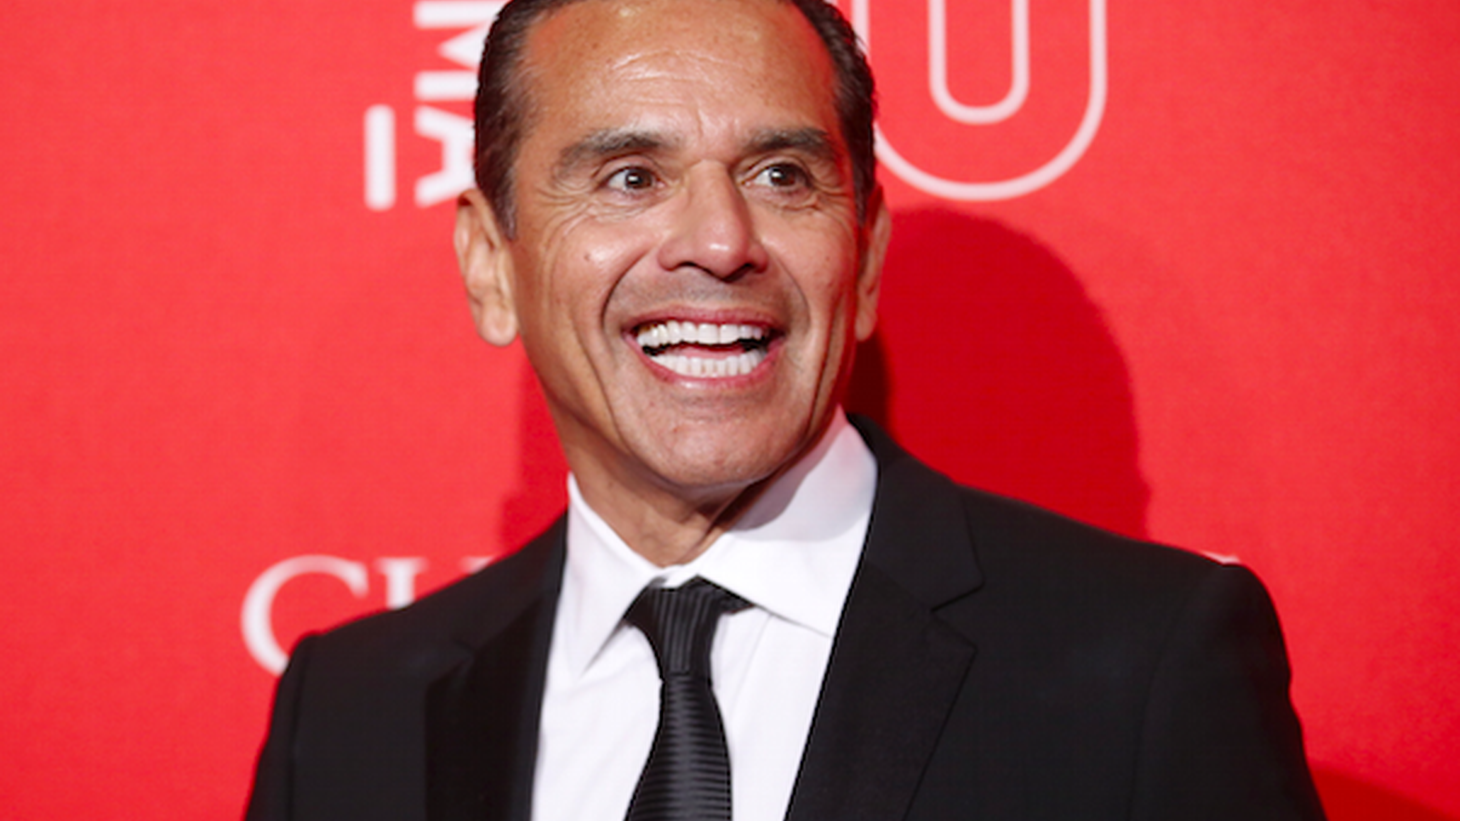 Democrat Antonio Villaraigosa was the mayor of Los Angeles from 2005 to 2013. Since then, he's been advising big corporations and teaching at USC. Now, he hopes to get back into politics by running to be California's next governor.